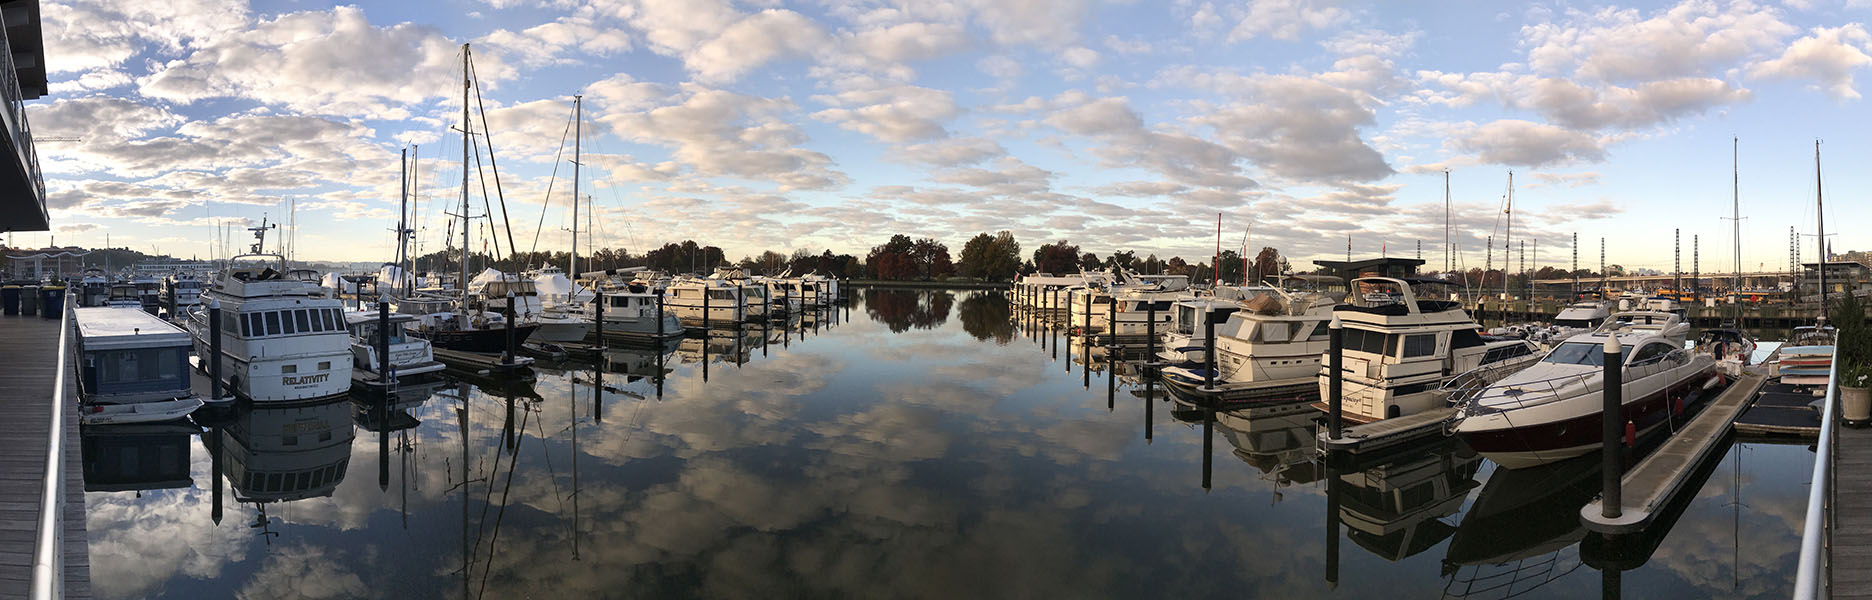 180 Degree views of Marina with Blue Sky and Puffy Clouds Reflected in the Water.